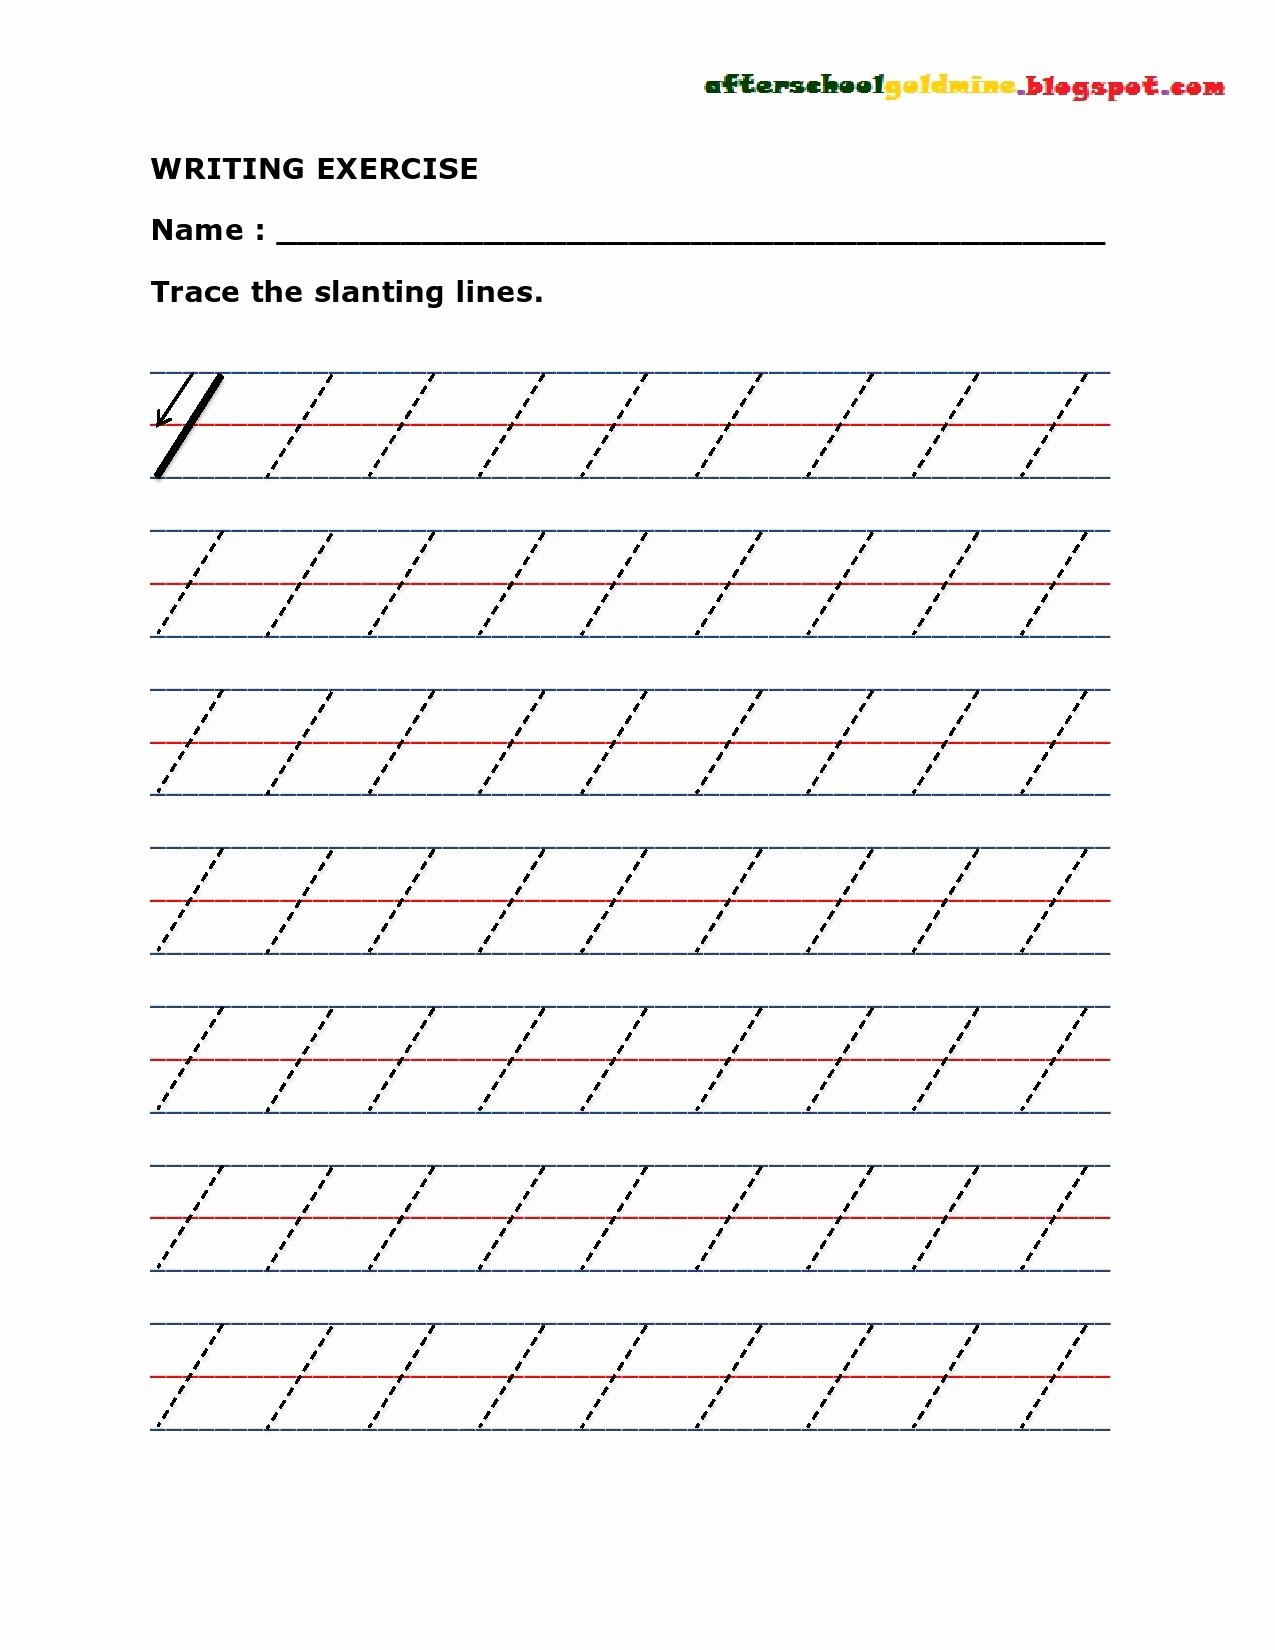 Slanting Lines Worksheets for Preschoolers Best Of Practice Writing Slanting or Diagonal Lines